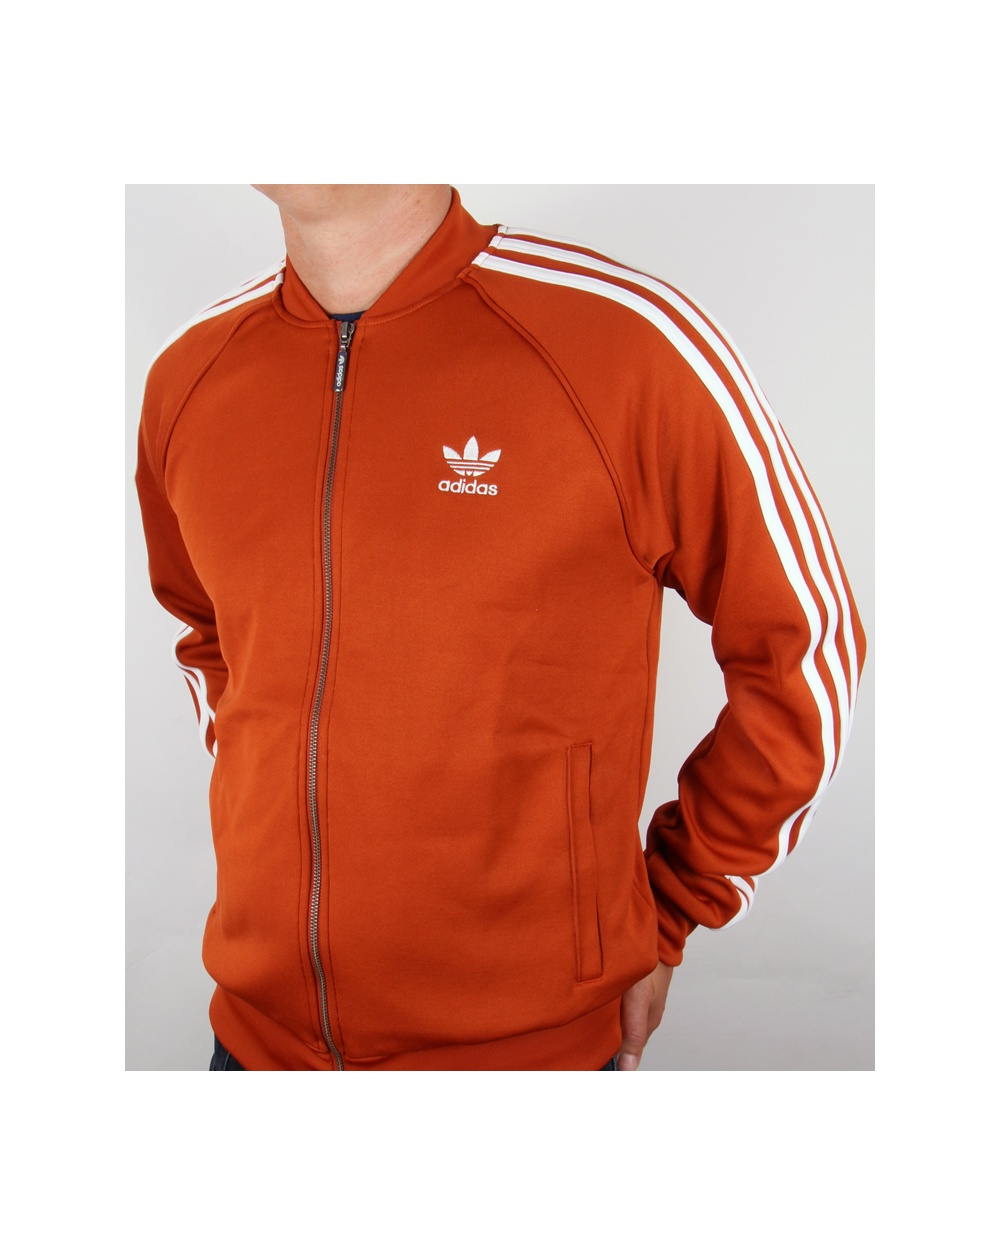 Adidas Originals Superstar Track Top Fox Red White Adidas